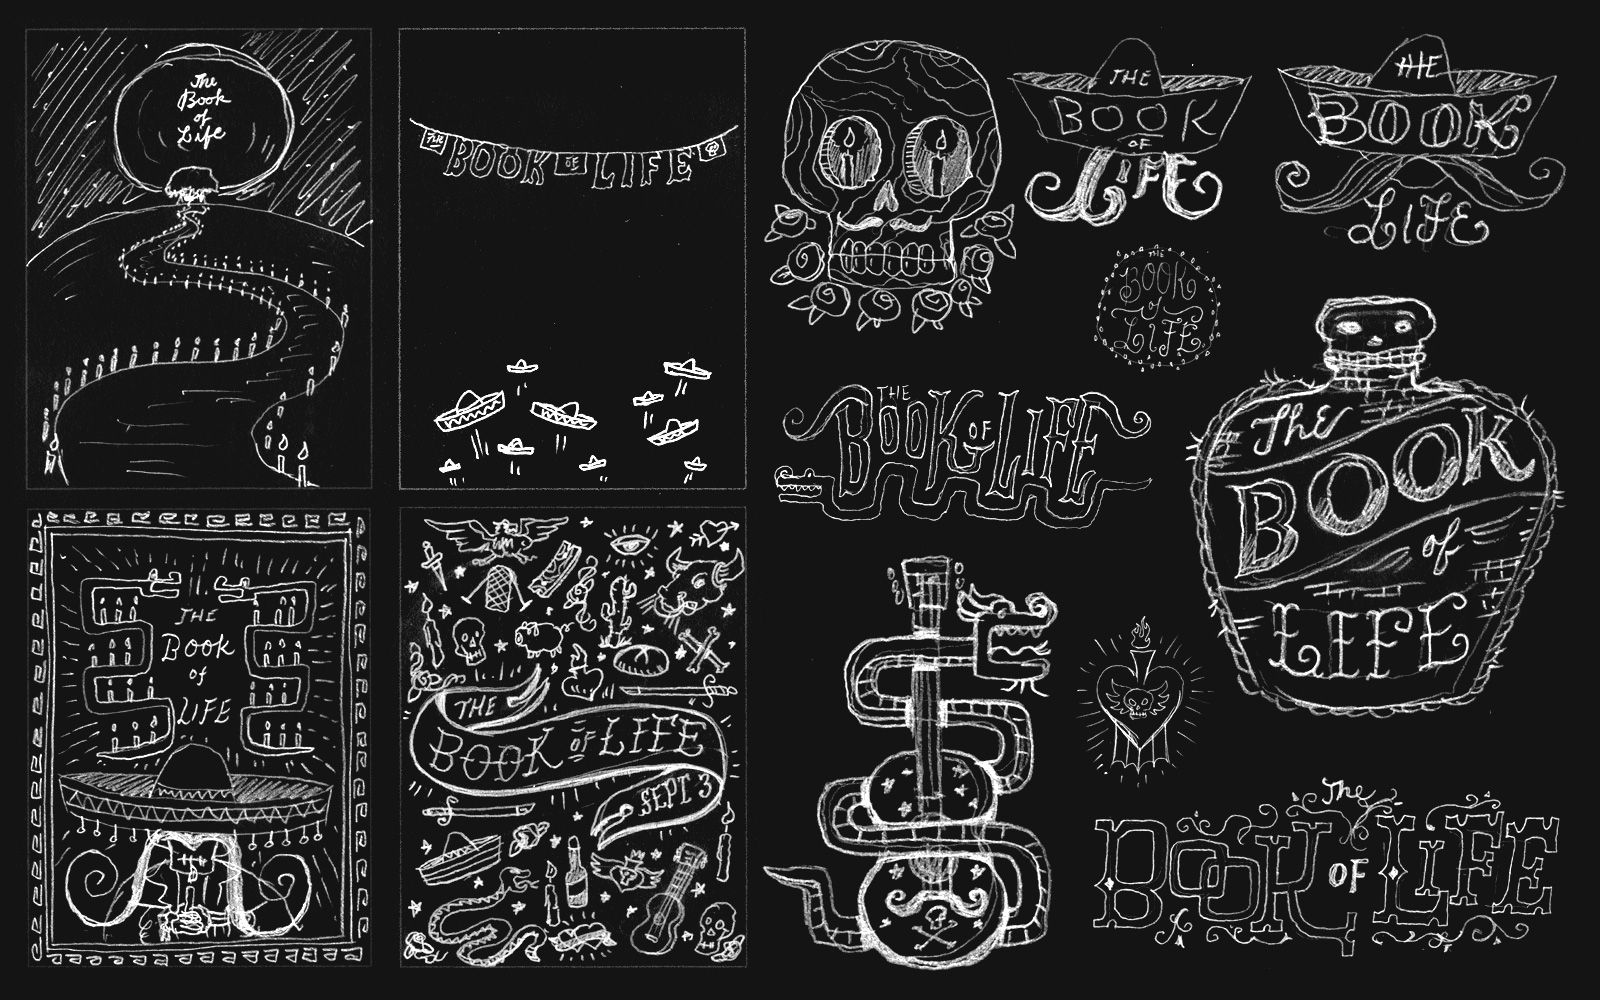 Jon Continuo Book of Life - Lettering Tutorial